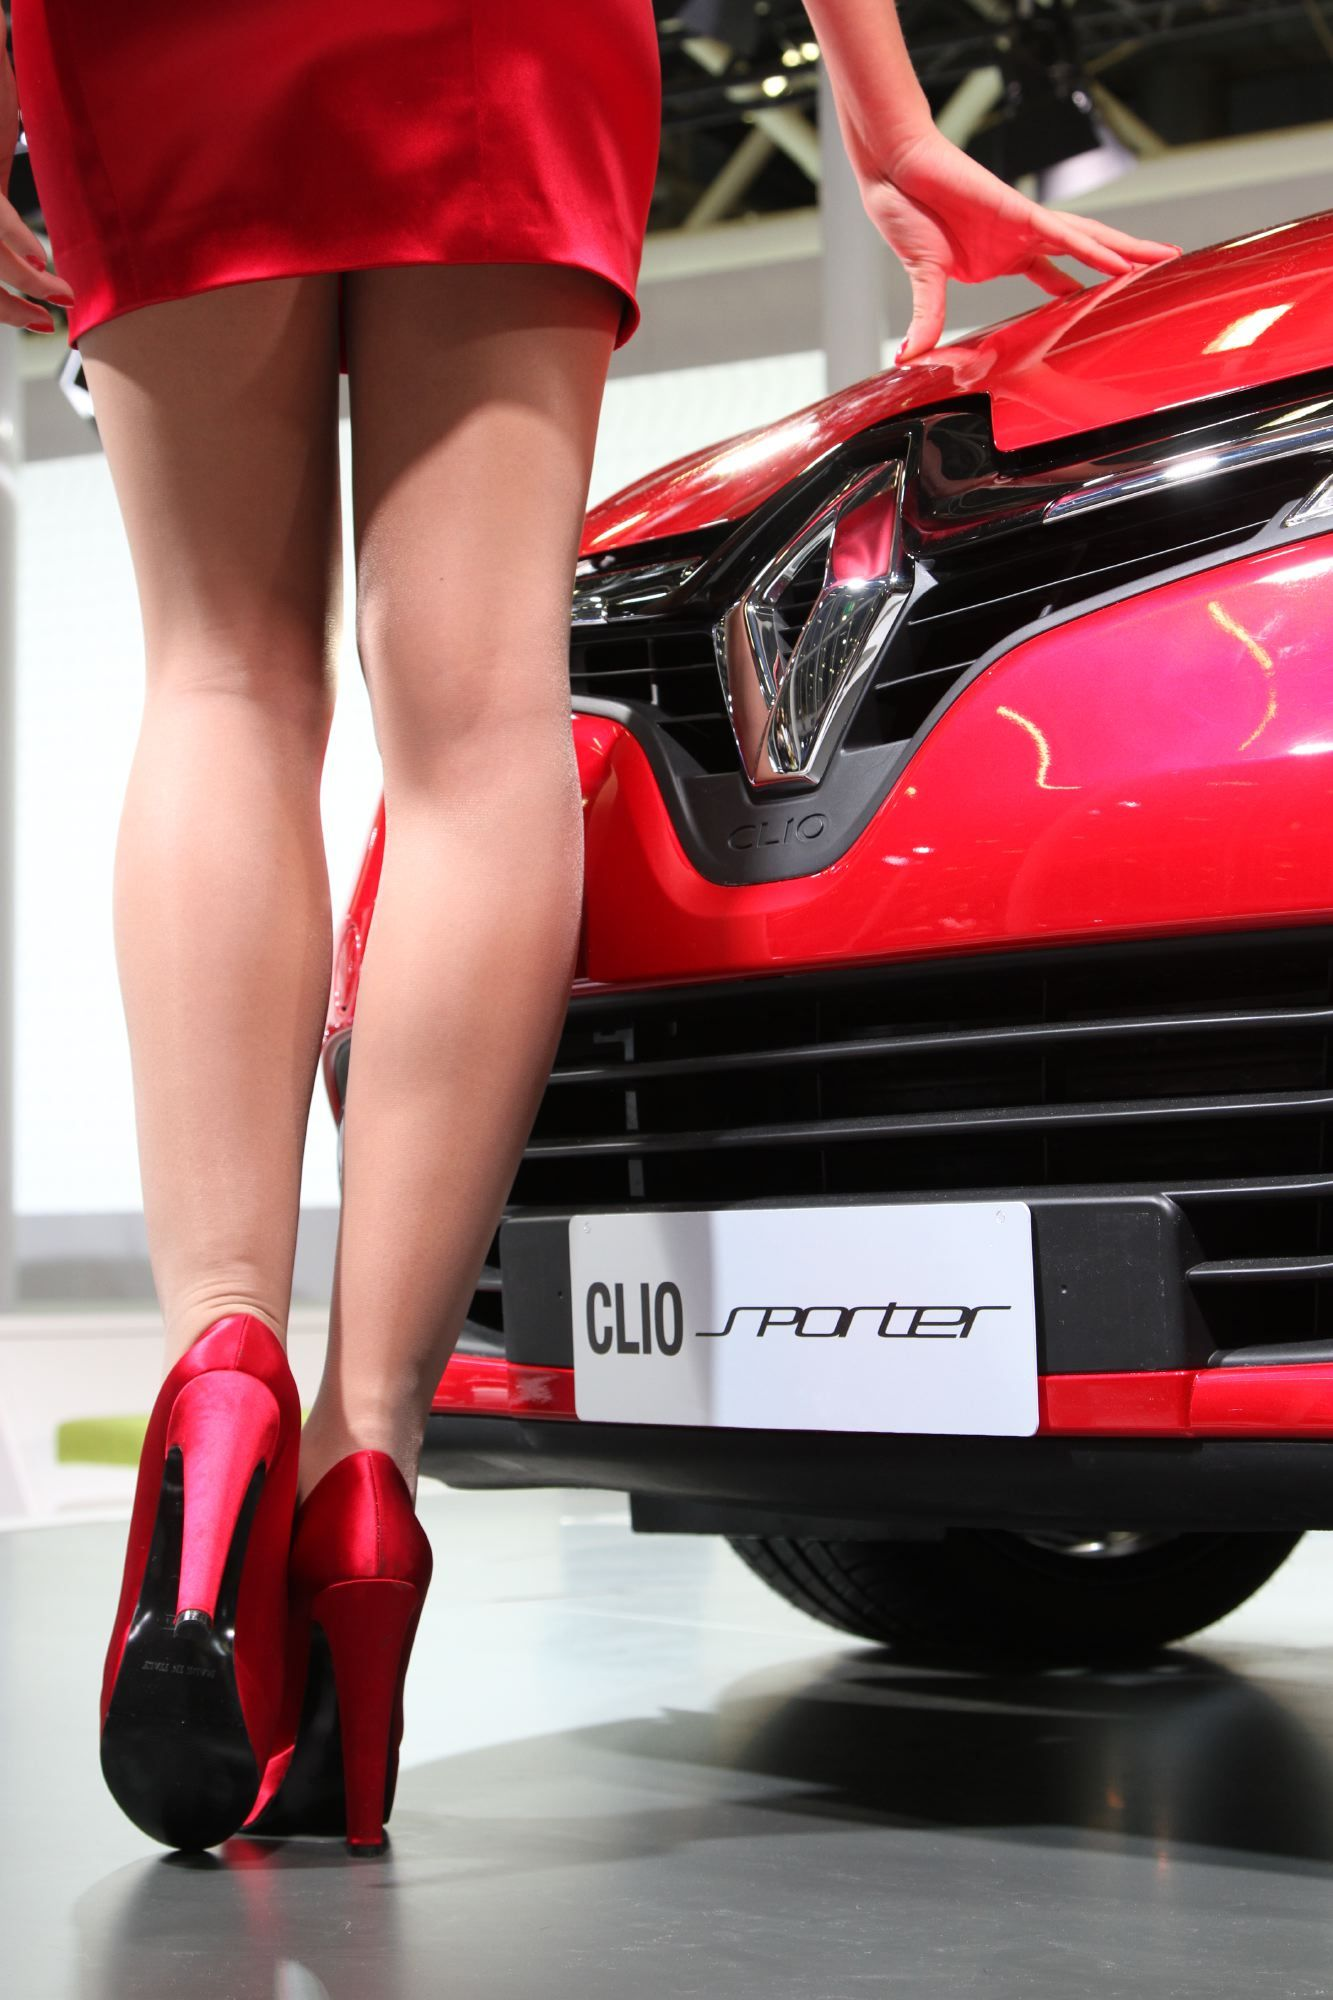 red passion renault clio sporter clio 4 luxury cars car cars. Black Bedroom Furniture Sets. Home Design Ideas